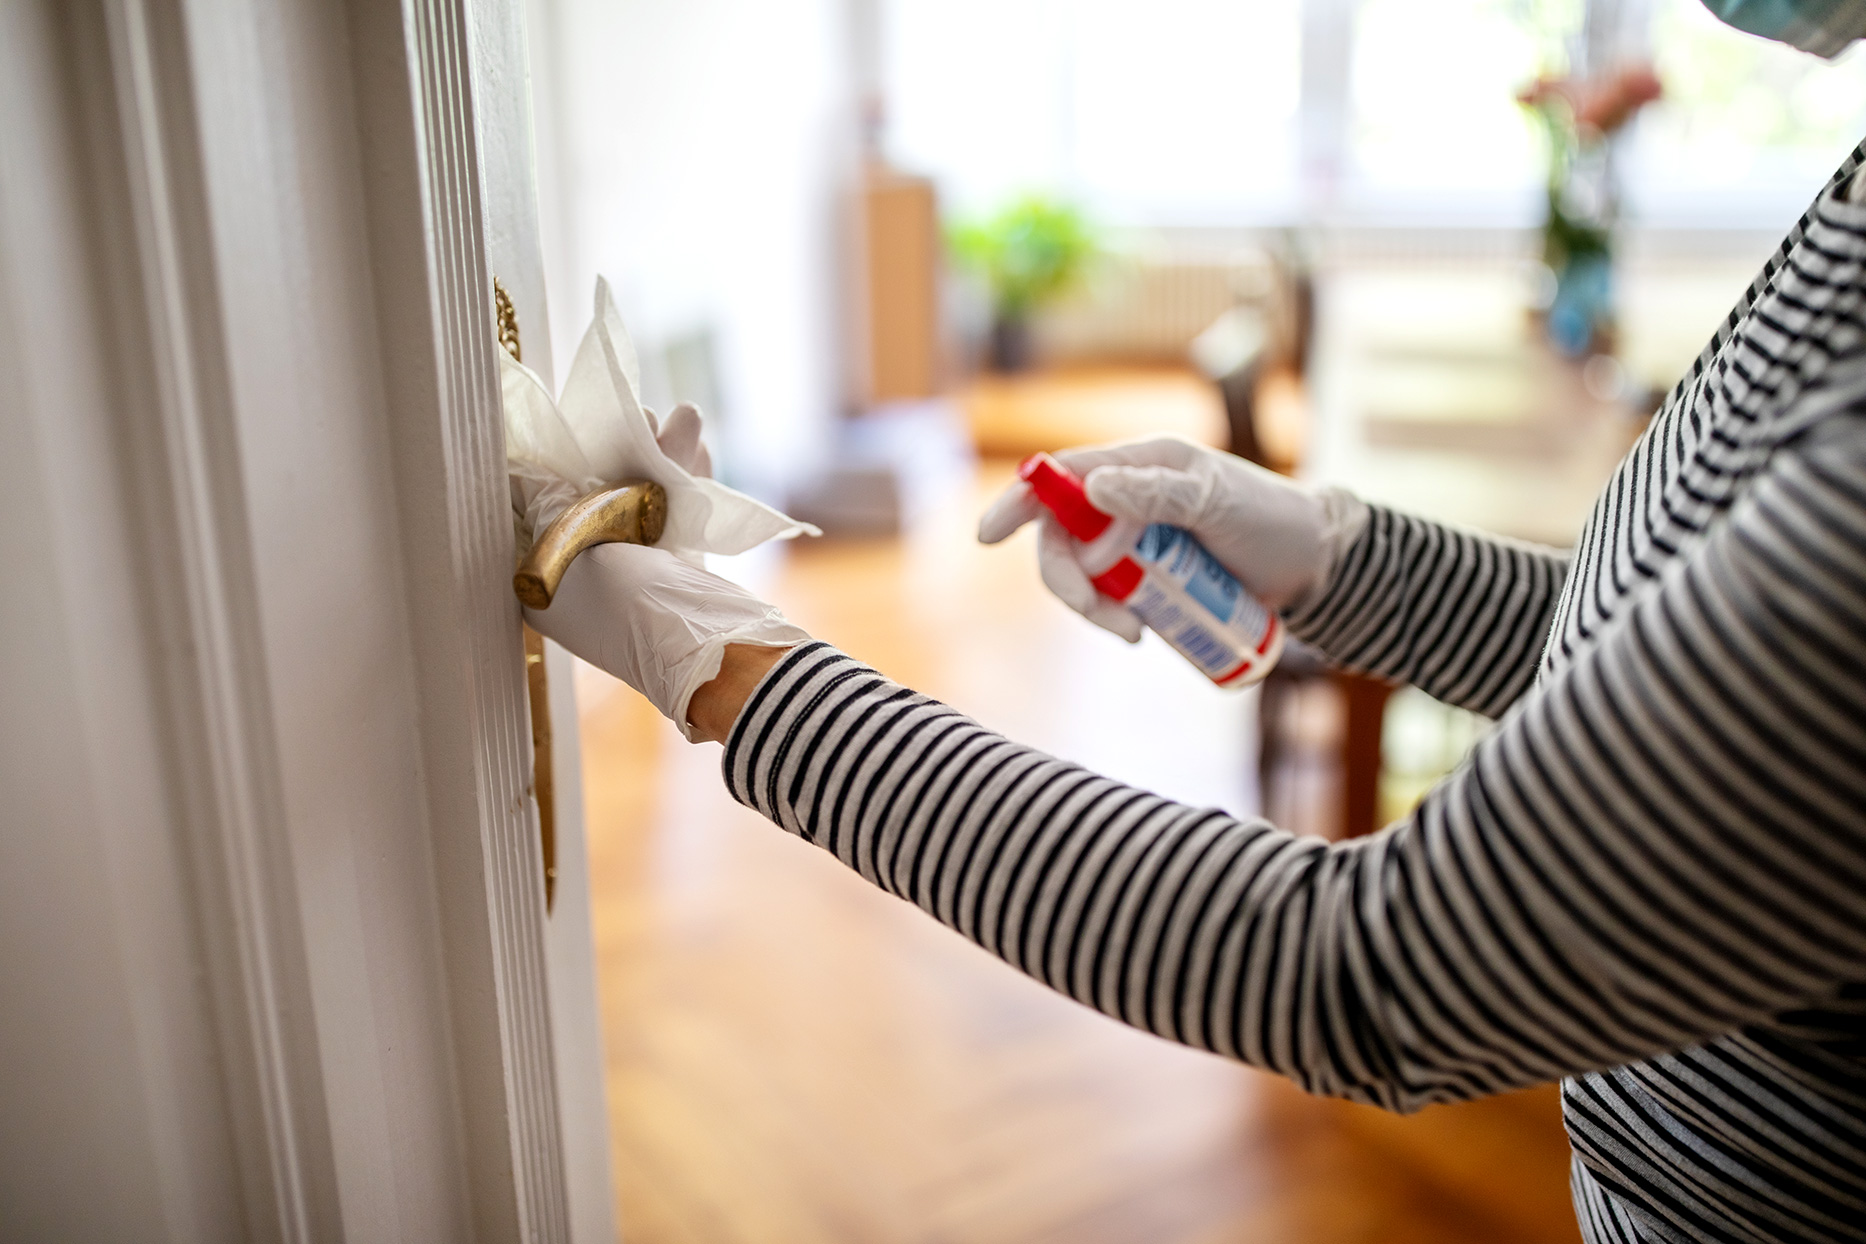 Americans-Are-Misusing-Household-Cleaners